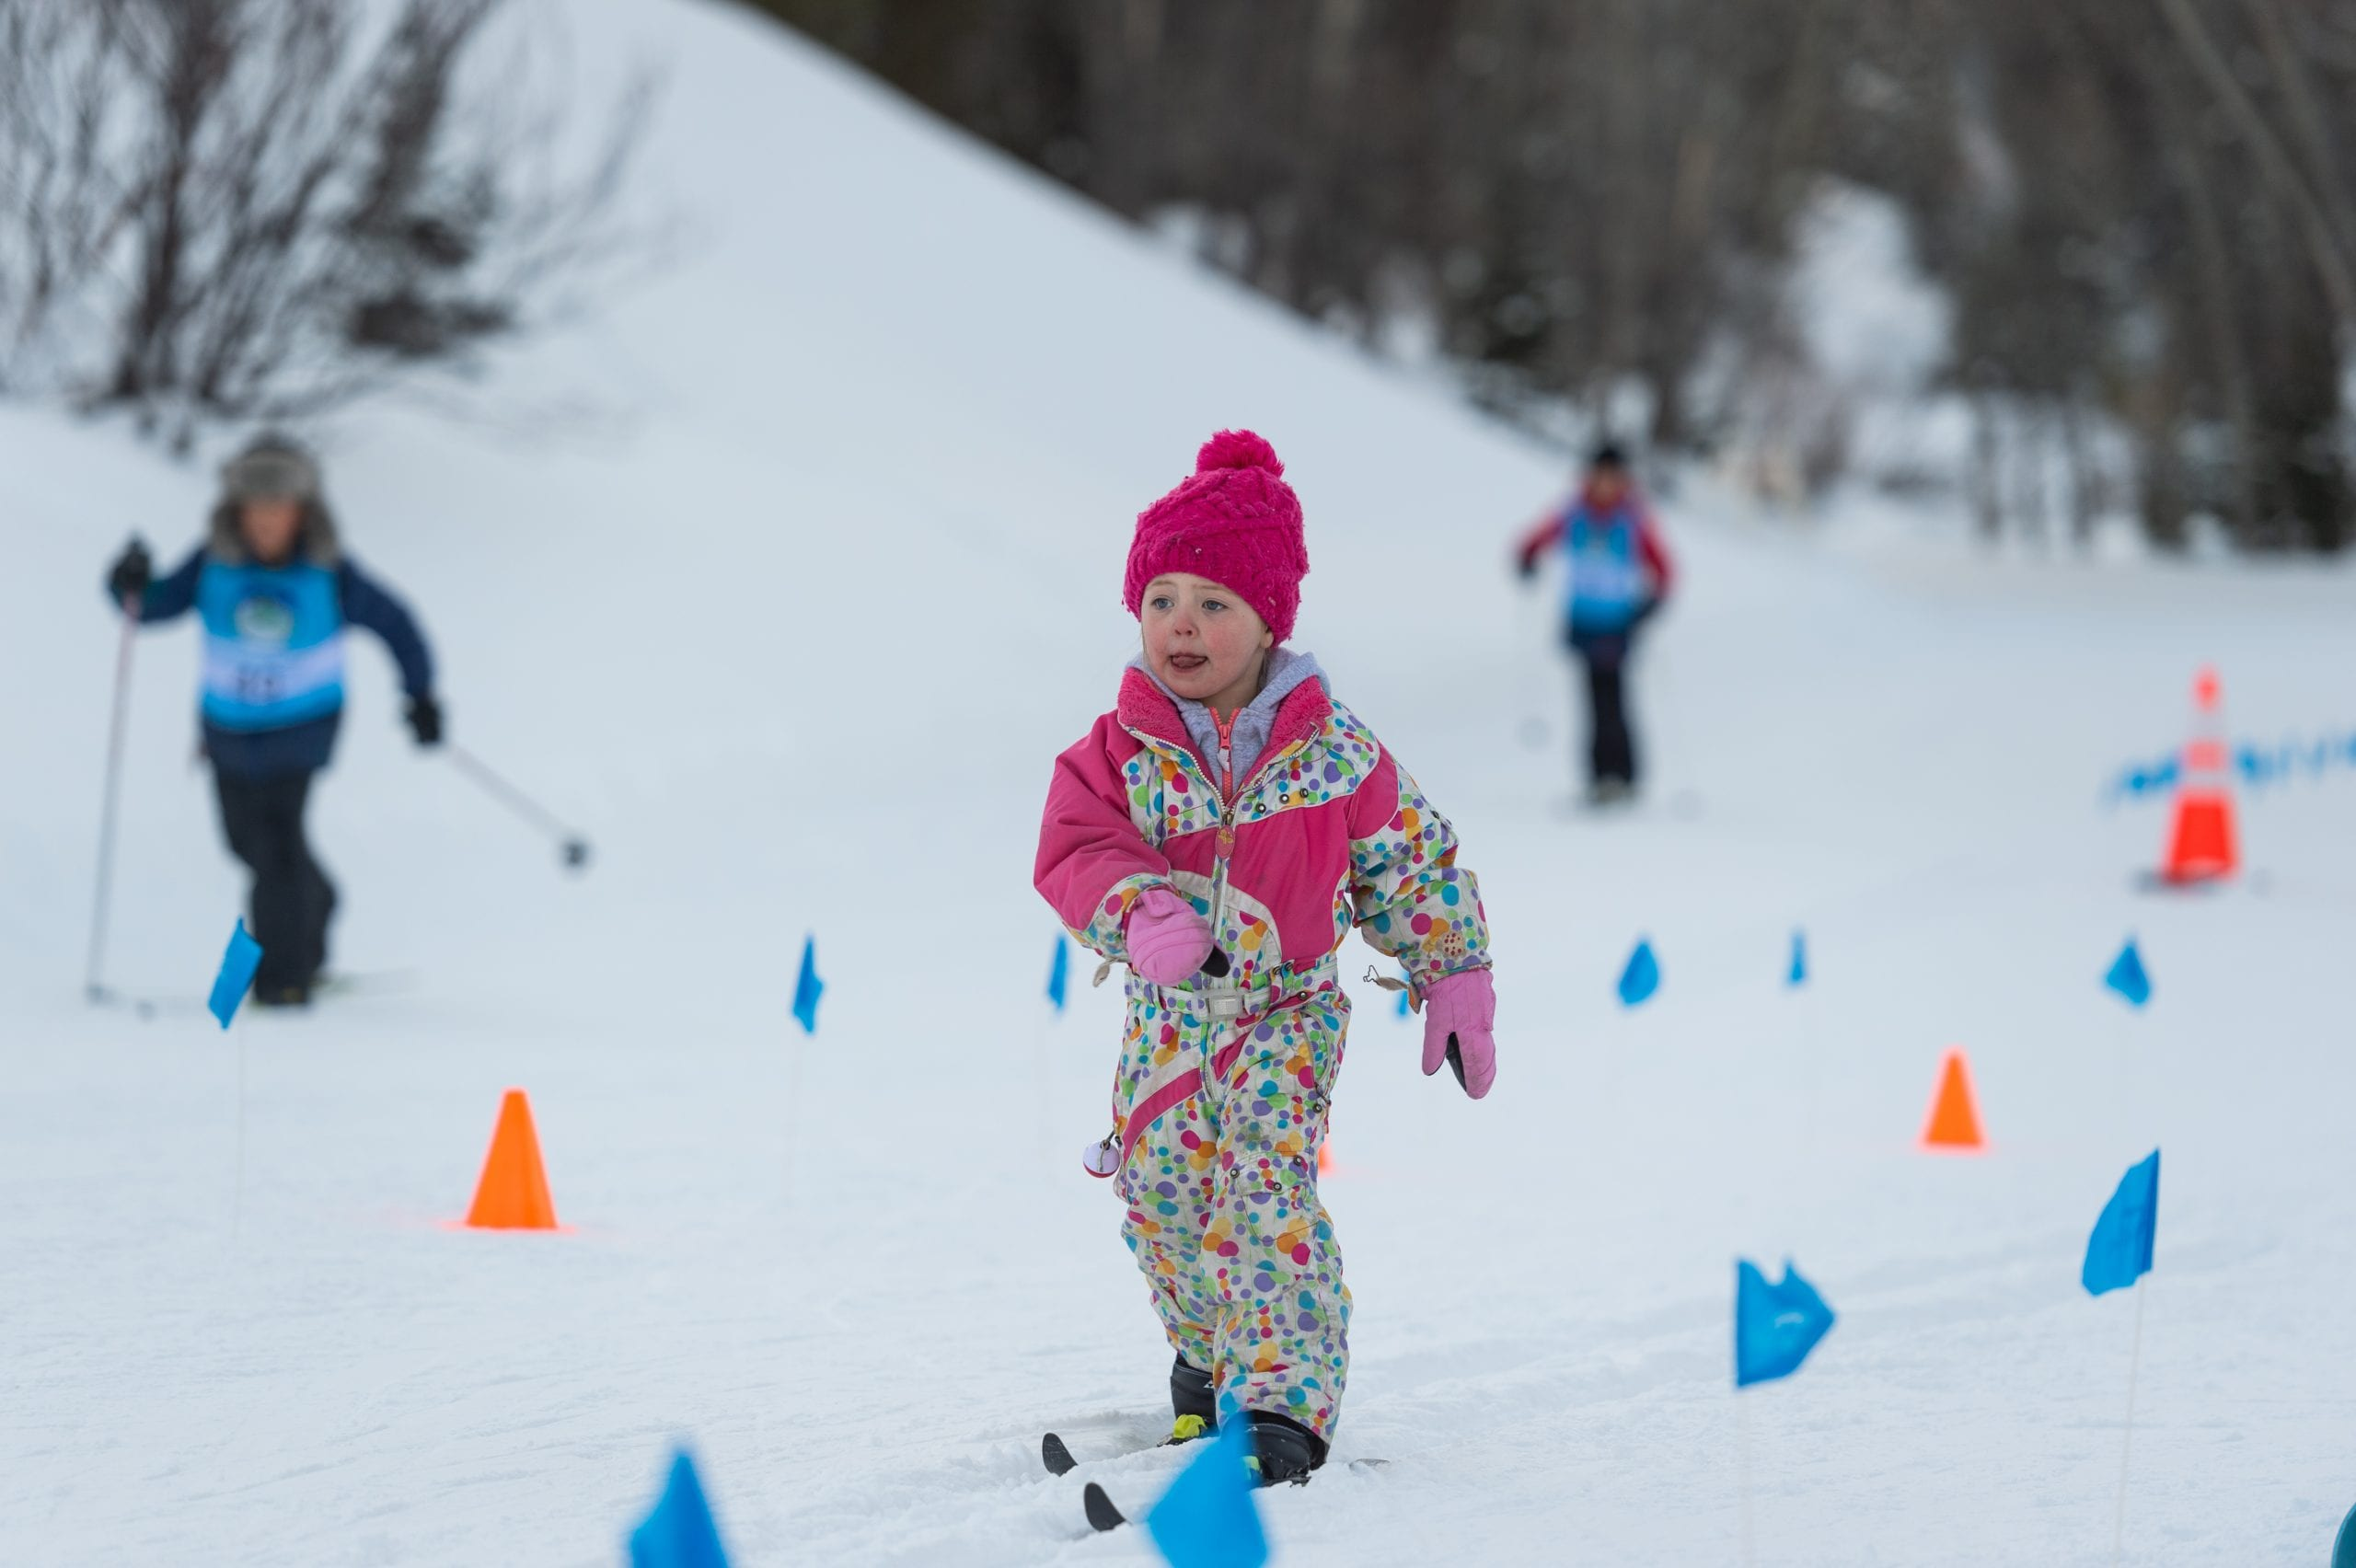 Young skier practicing classic technique in after school program